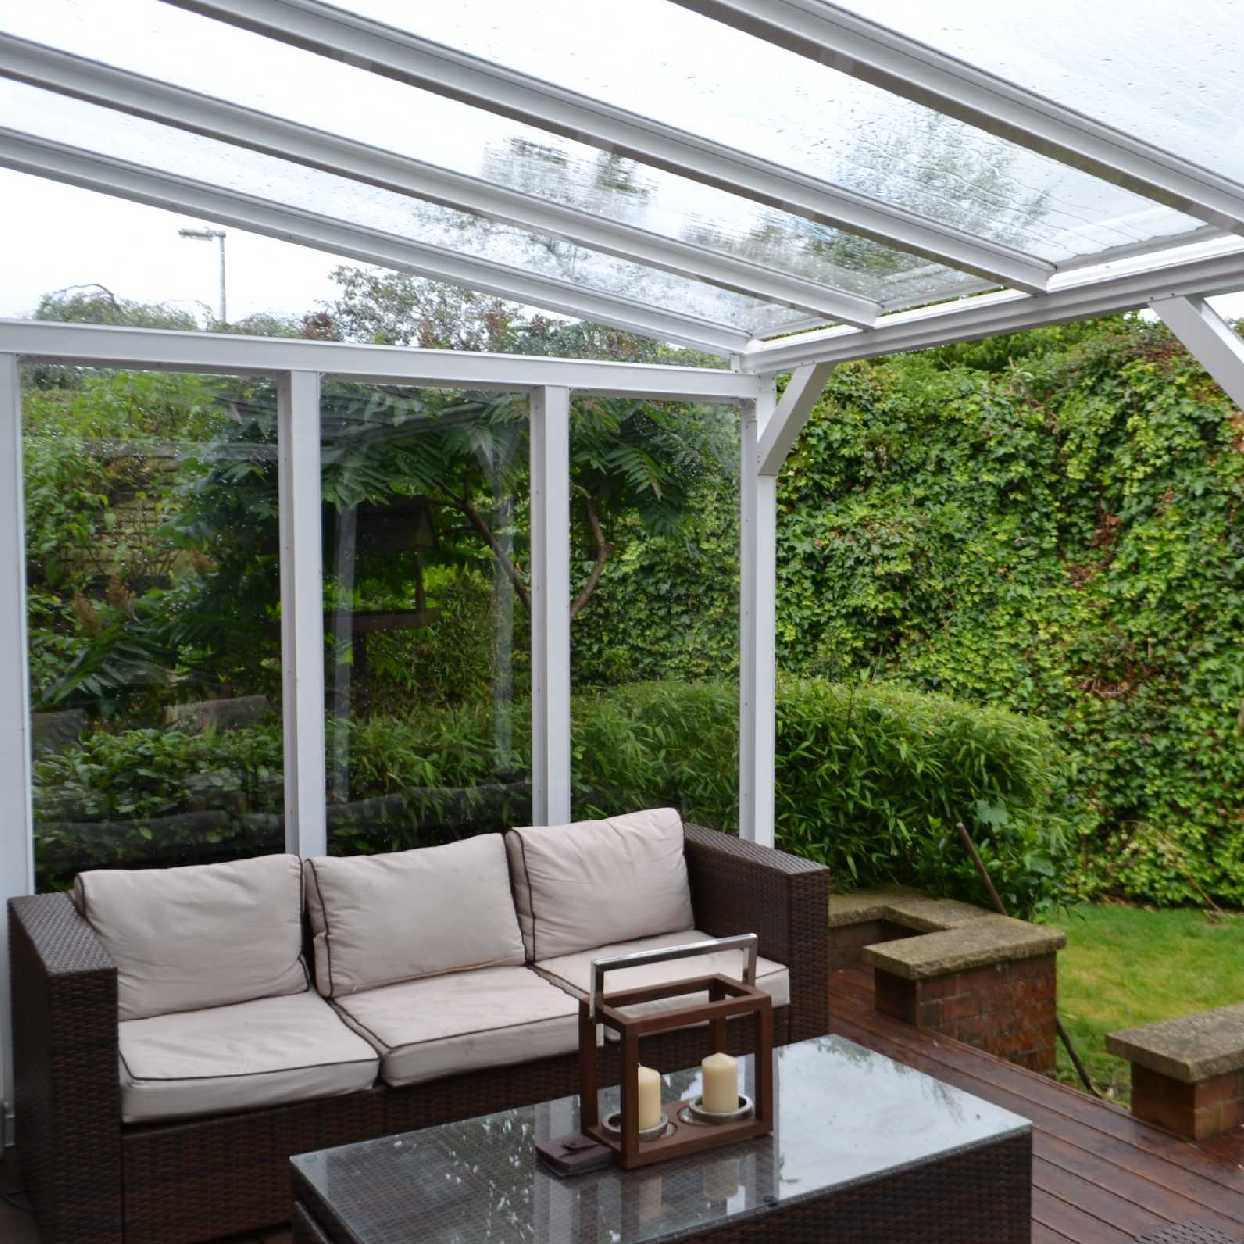 Great selection of Omega Smart White Lean-To Canopy with 16mm Polycarbonate Glazing - 11.4m (W) x 4.0m (P), (5) Supporting Posts